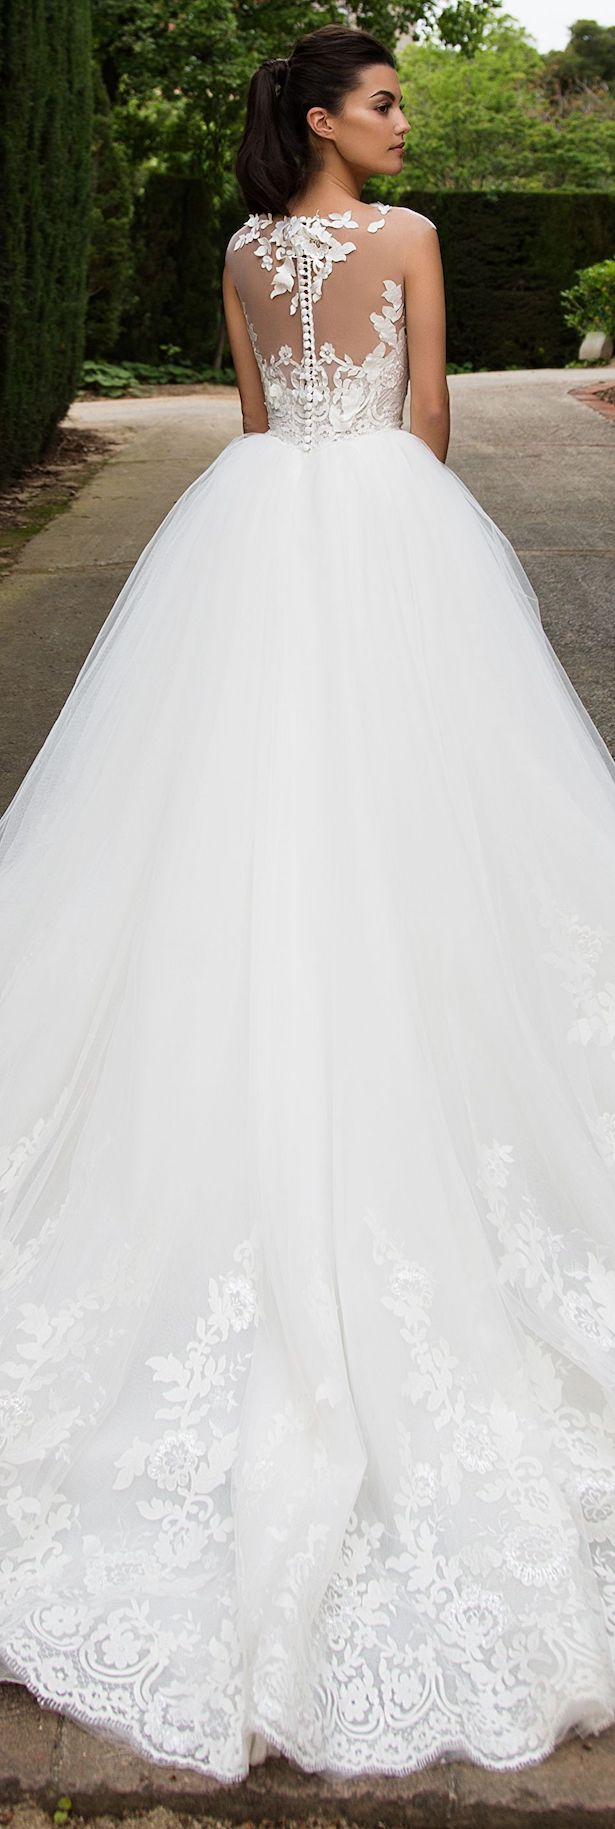 Wedding Gowns White 73 Epic  Wedding Dress by